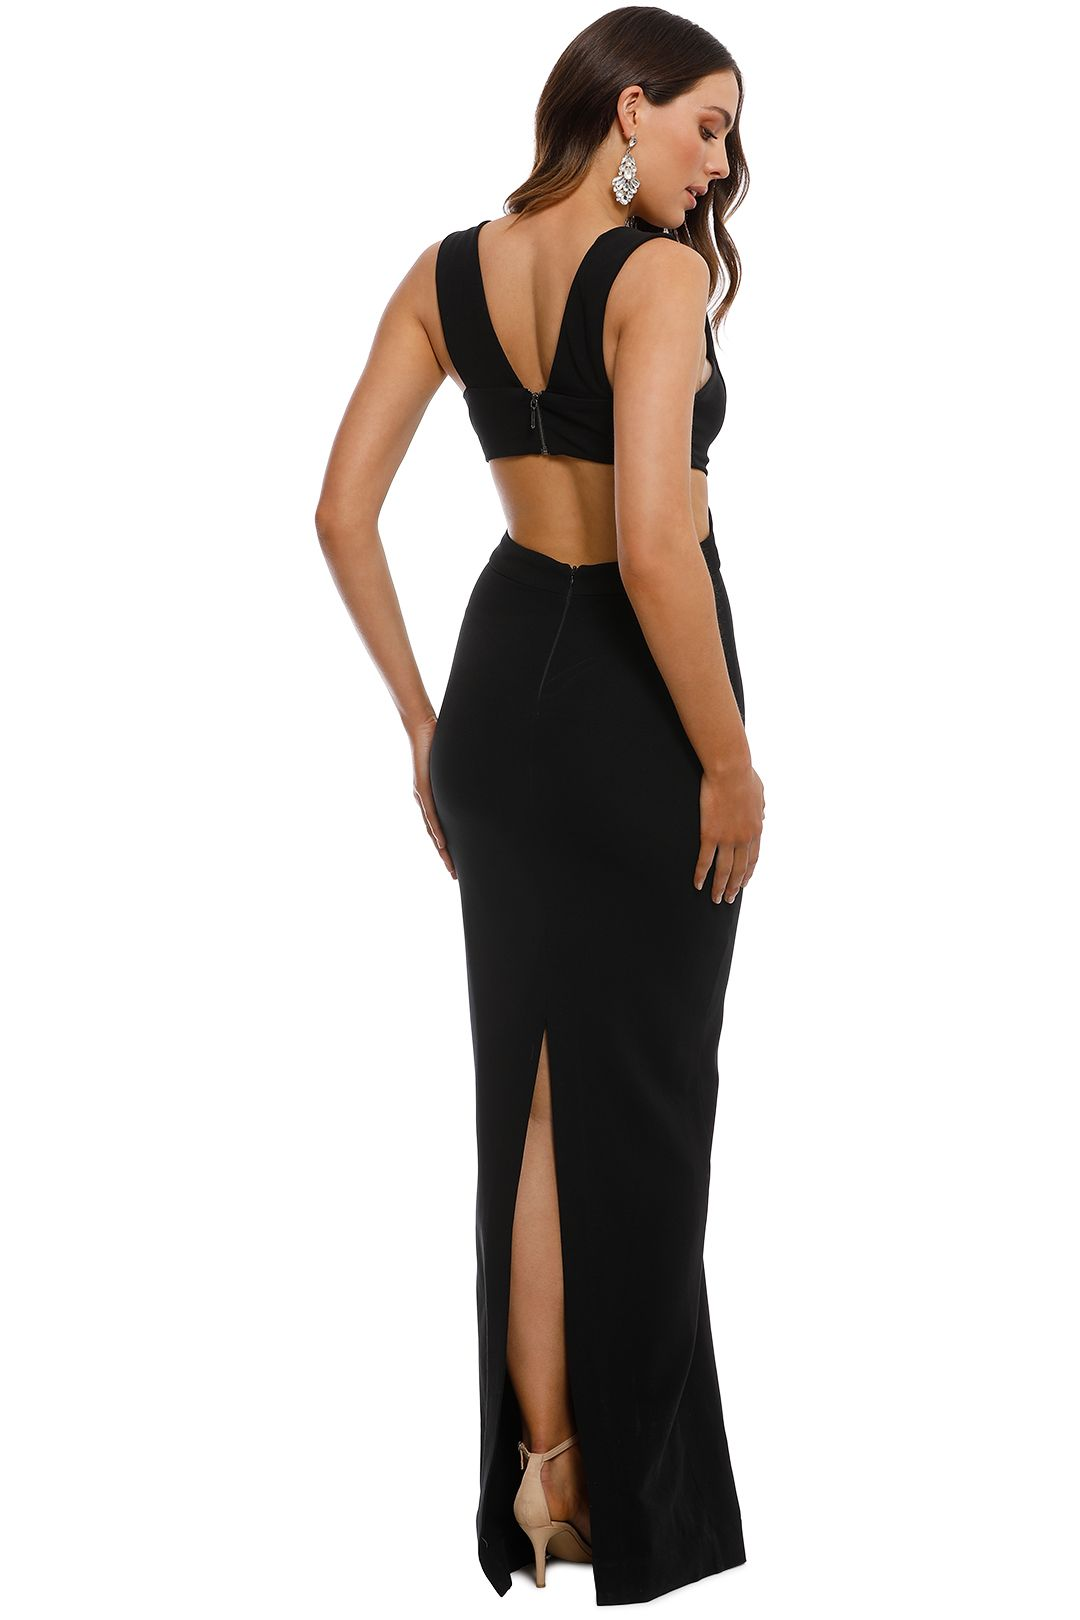 Nicole Miller - Carlessa Cut Out Gown - Black - Back